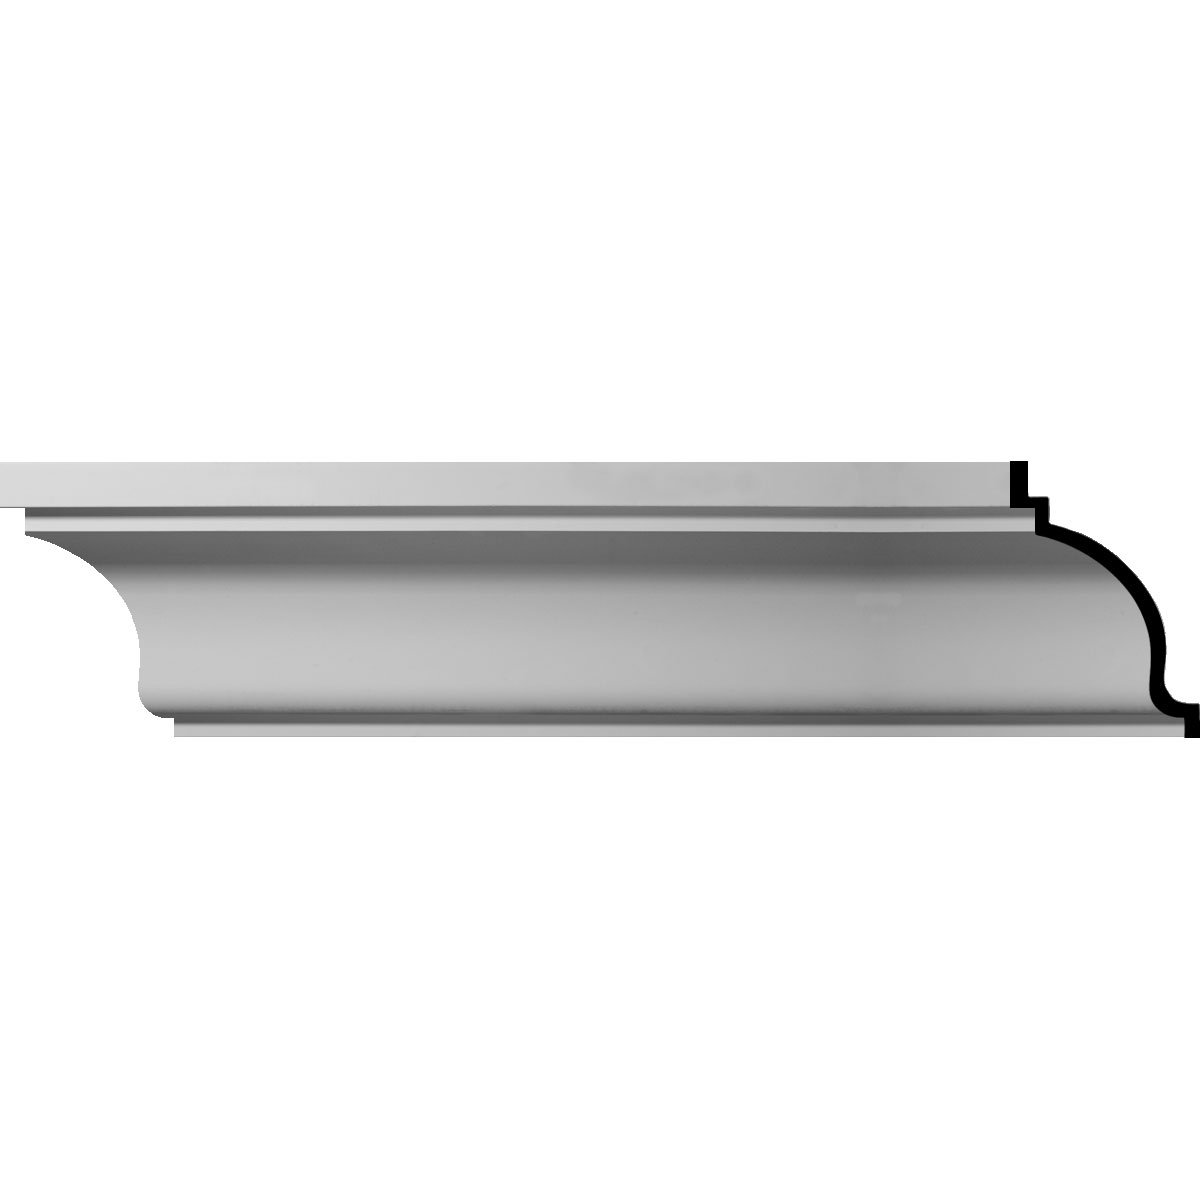 Ekena Millwork MLD09X12X14CL-CASE-8 9'' H x 11-3/4'' P x 14-1/4'' F x 96'' L Claremont Smooth Crown Molding (8-Pack)